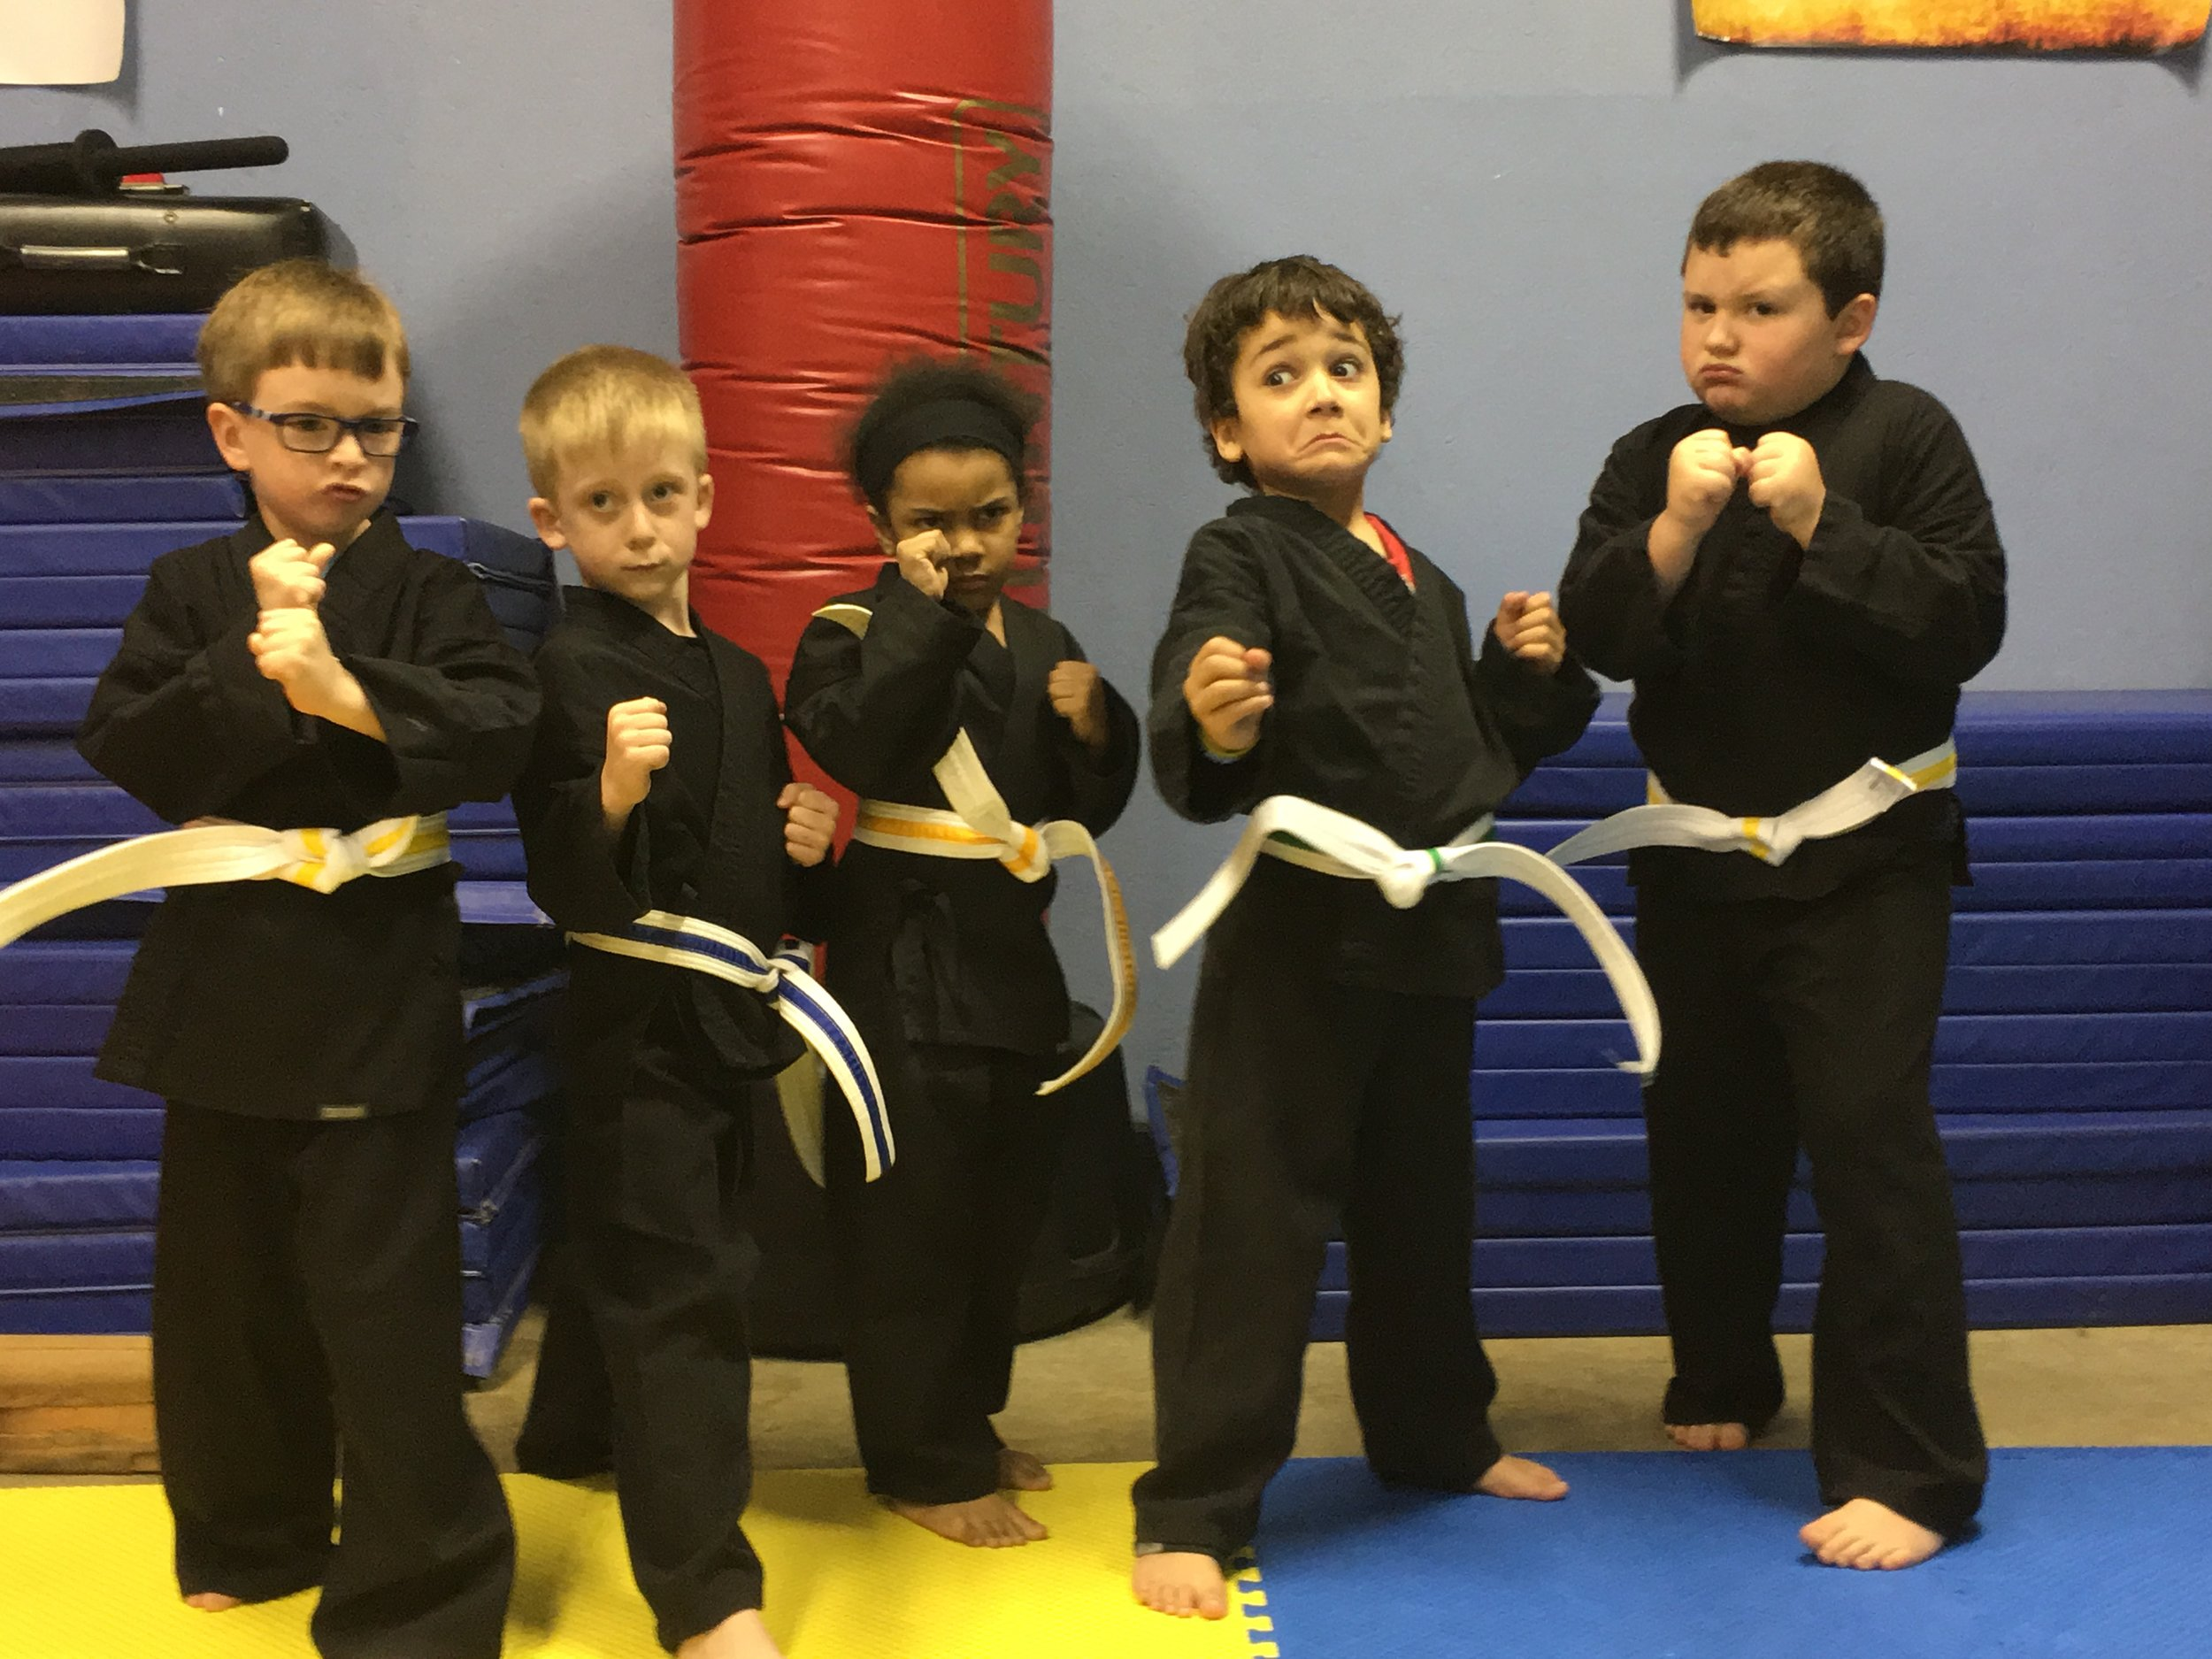 Wee Warriors    ages 4-7    Tues. & Thurs. 5:30 PM